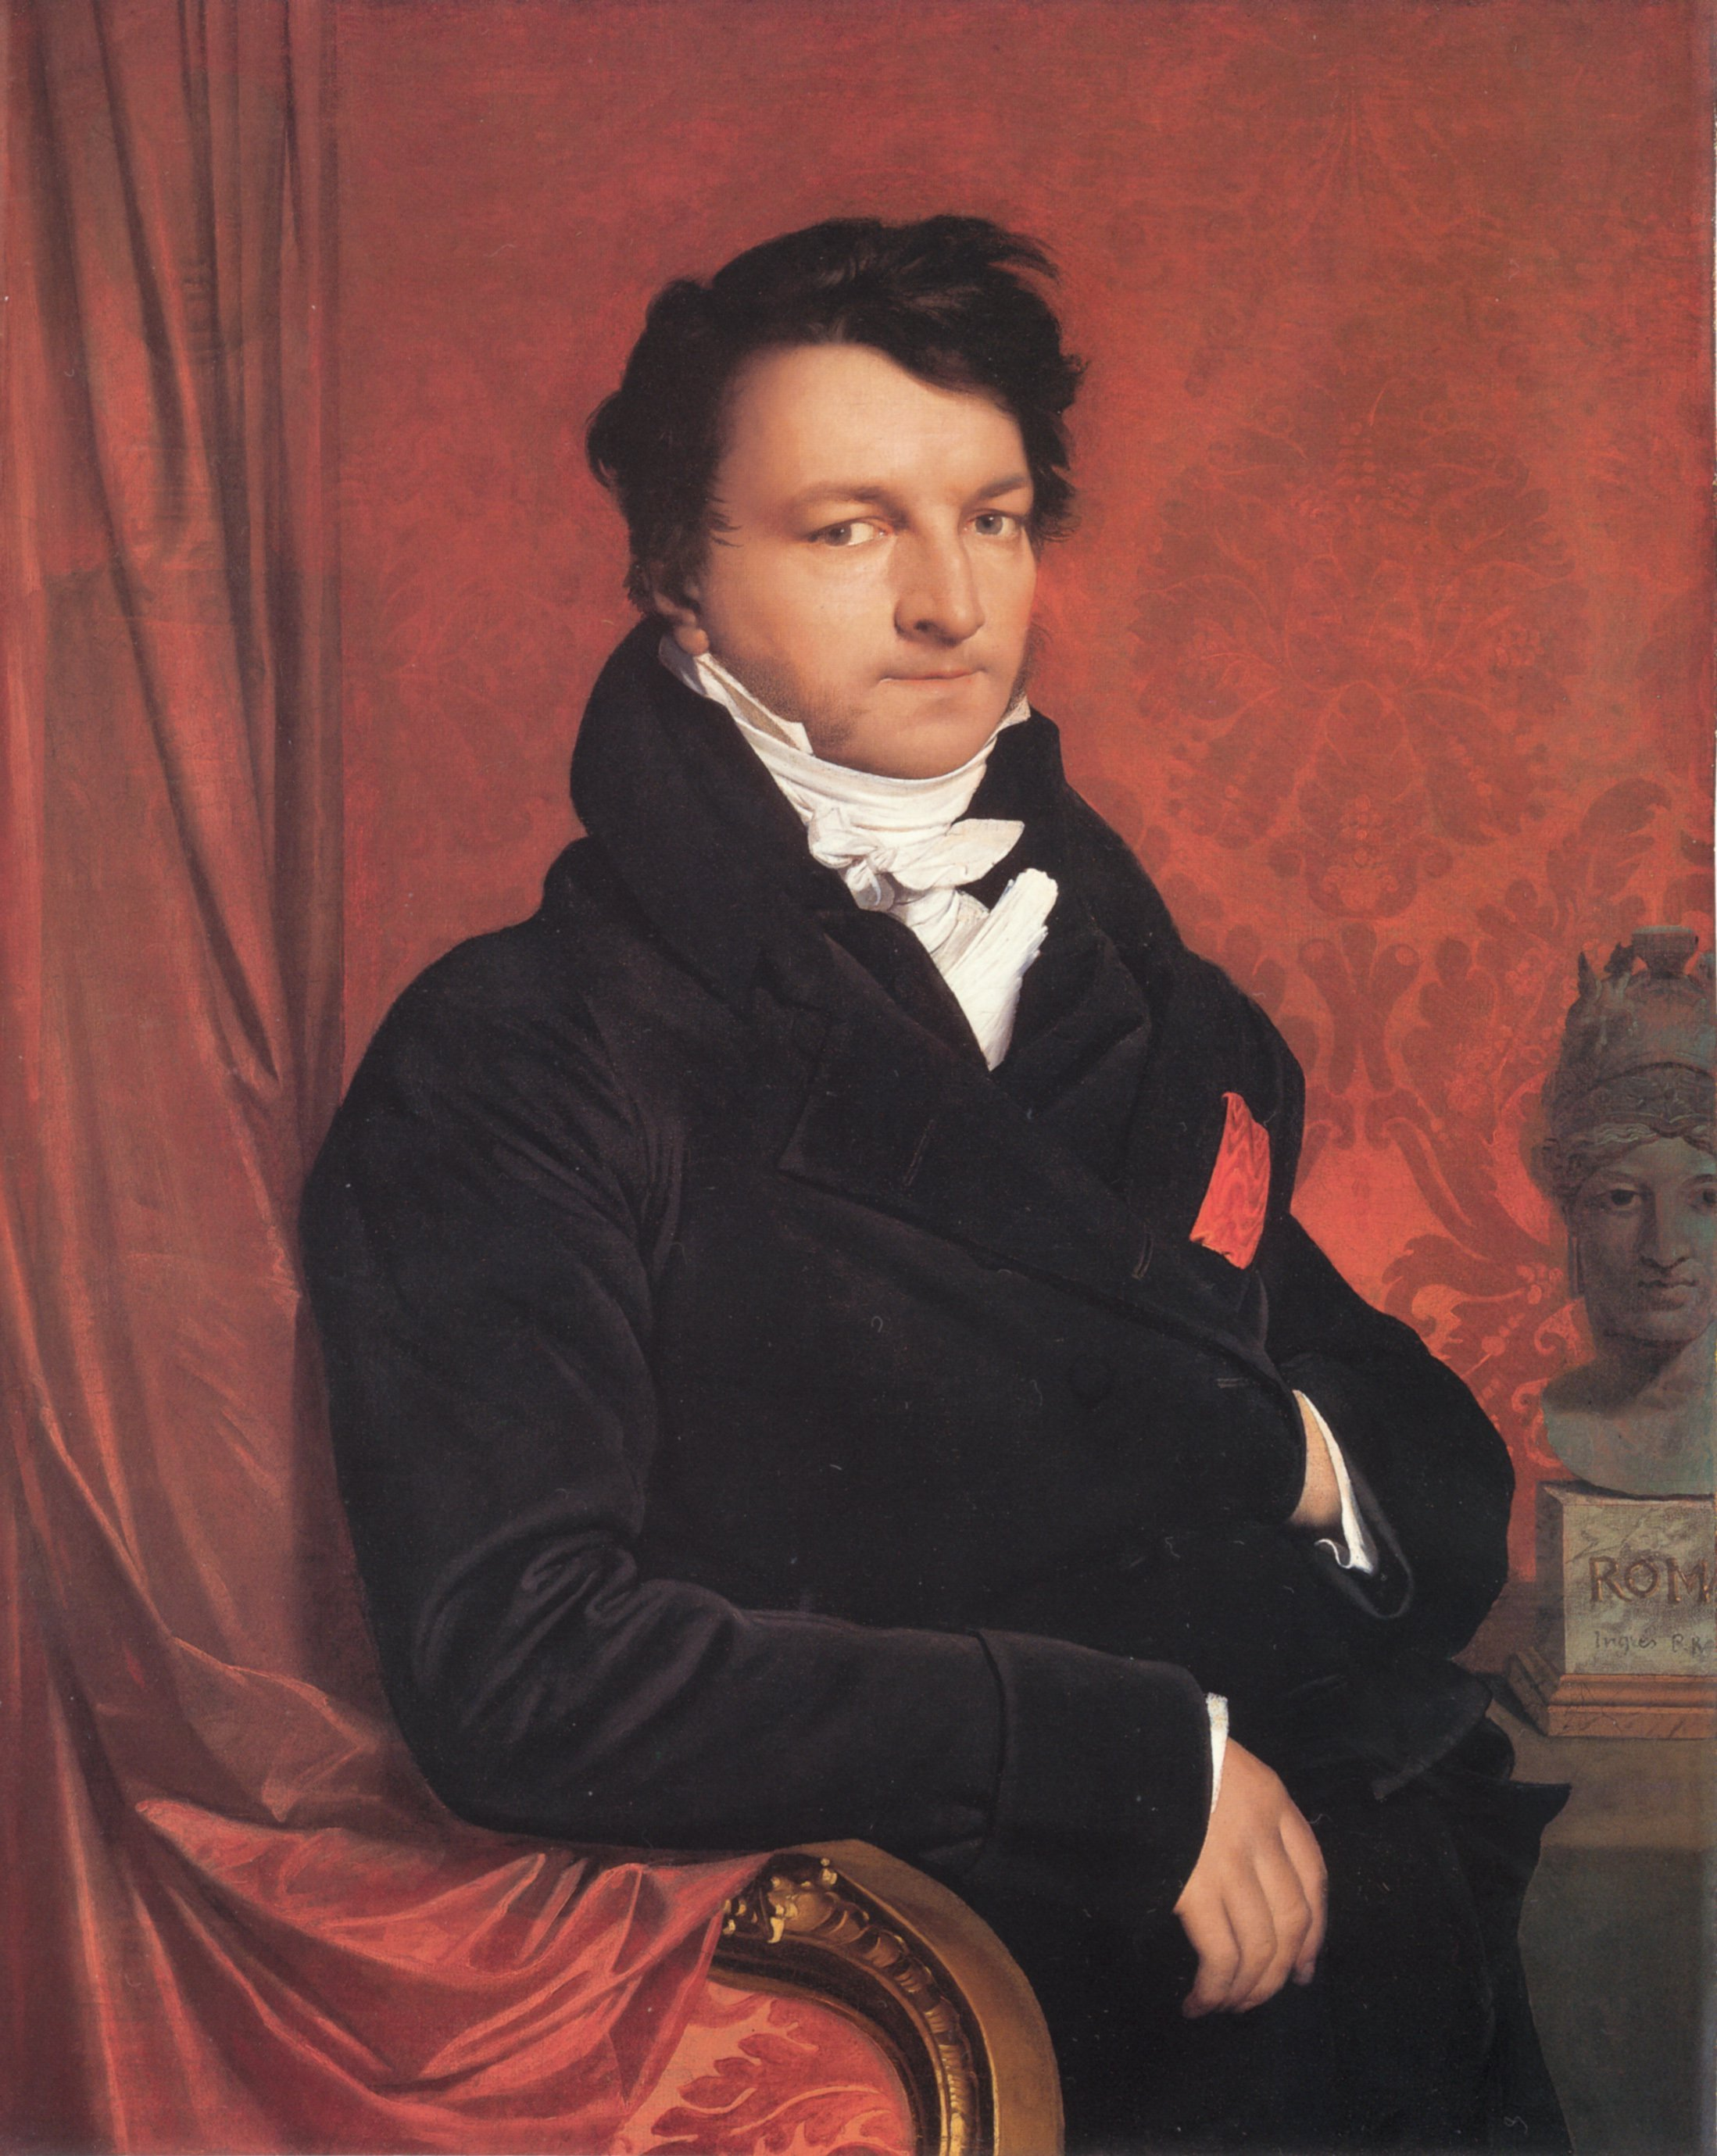 Jacques Marquet | Jean Auguste Dominique Ingres | Oil Painting